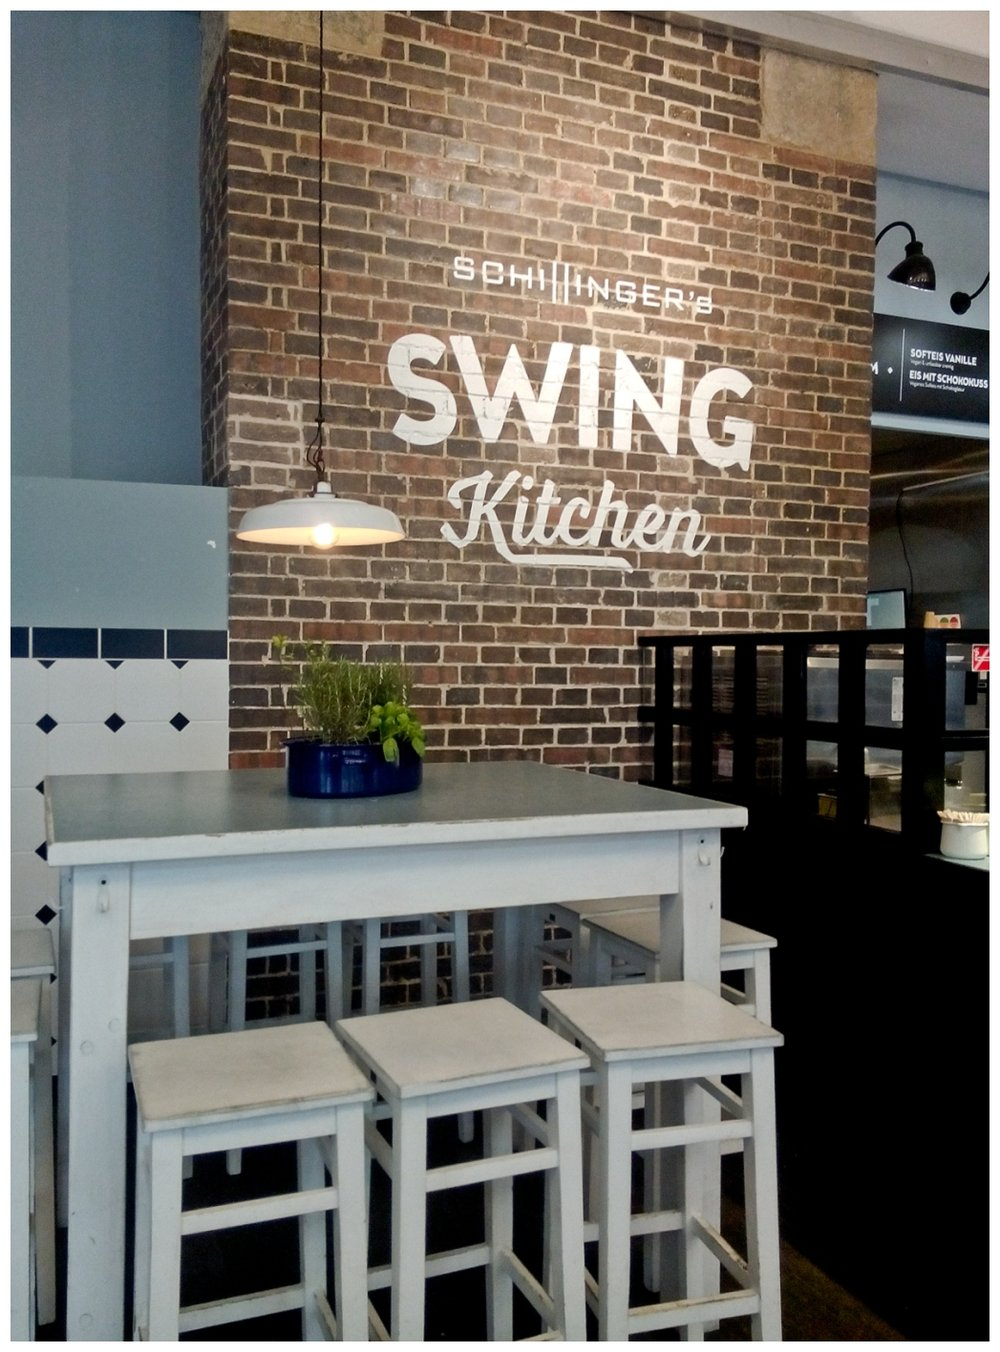 Swing Kitchen - vegane Burger